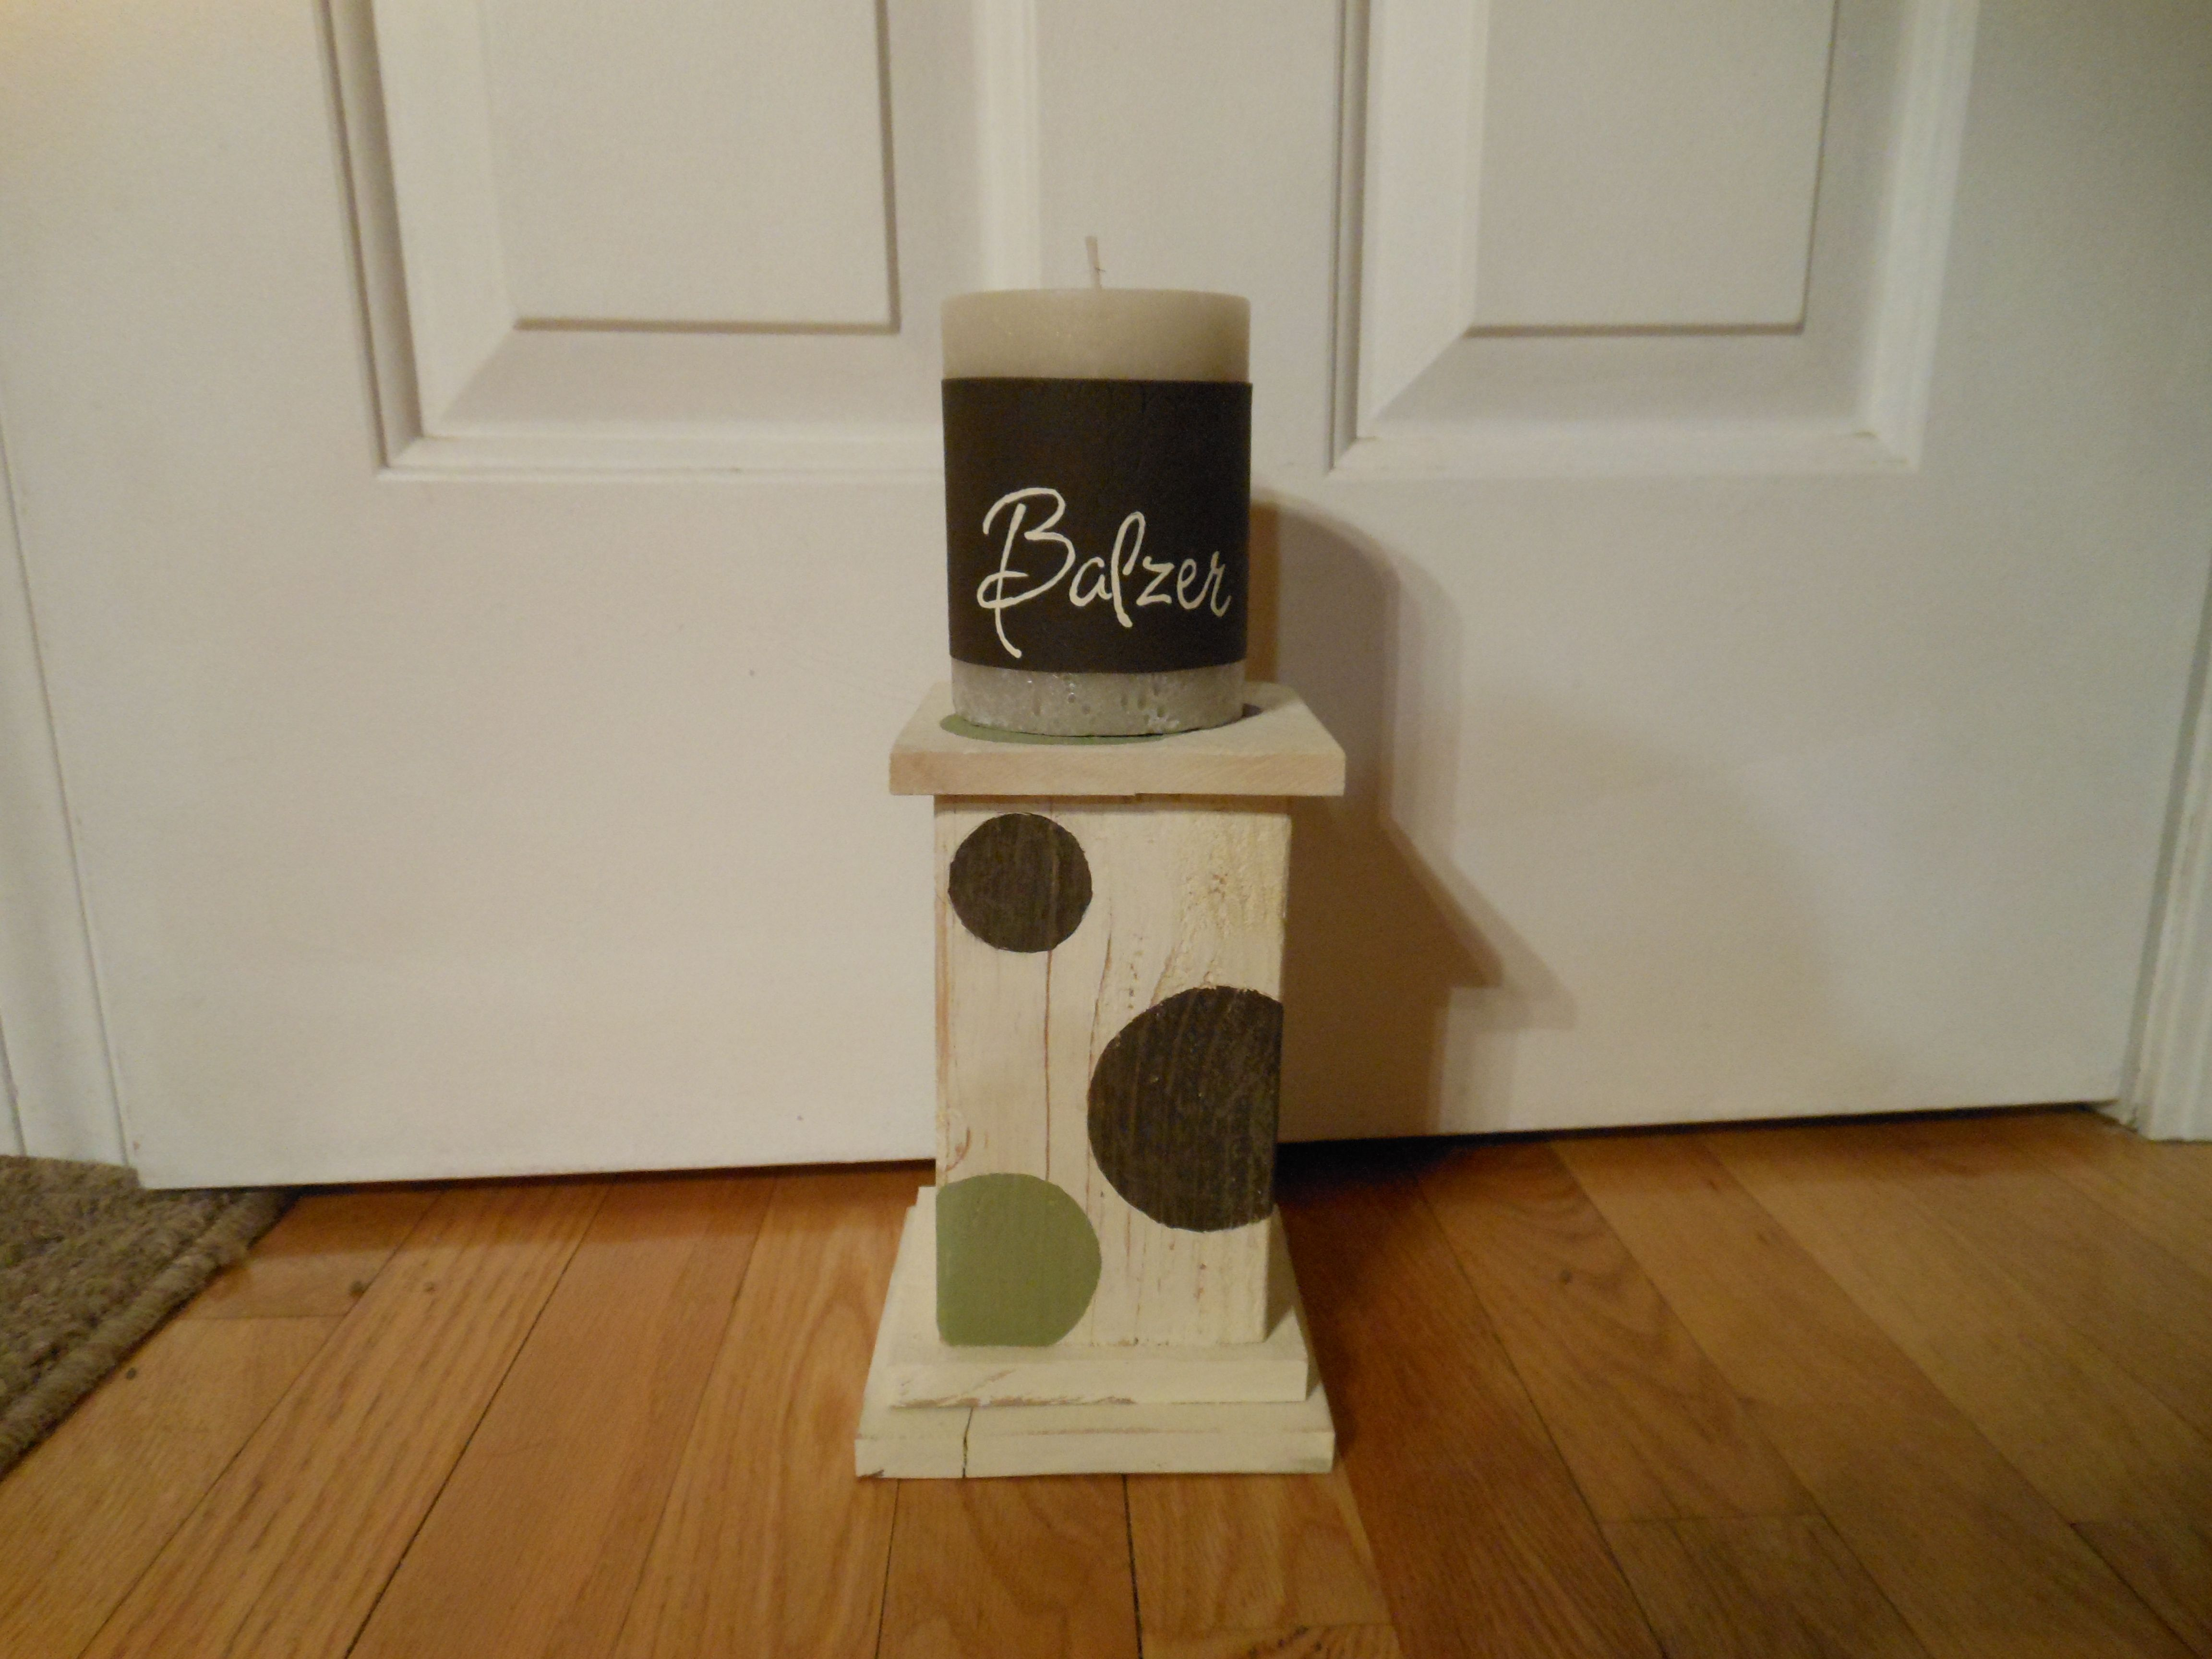 4x4 Wood Crafts 4x4 Candle Holder Projects I Have Tackled Pinterest Craft